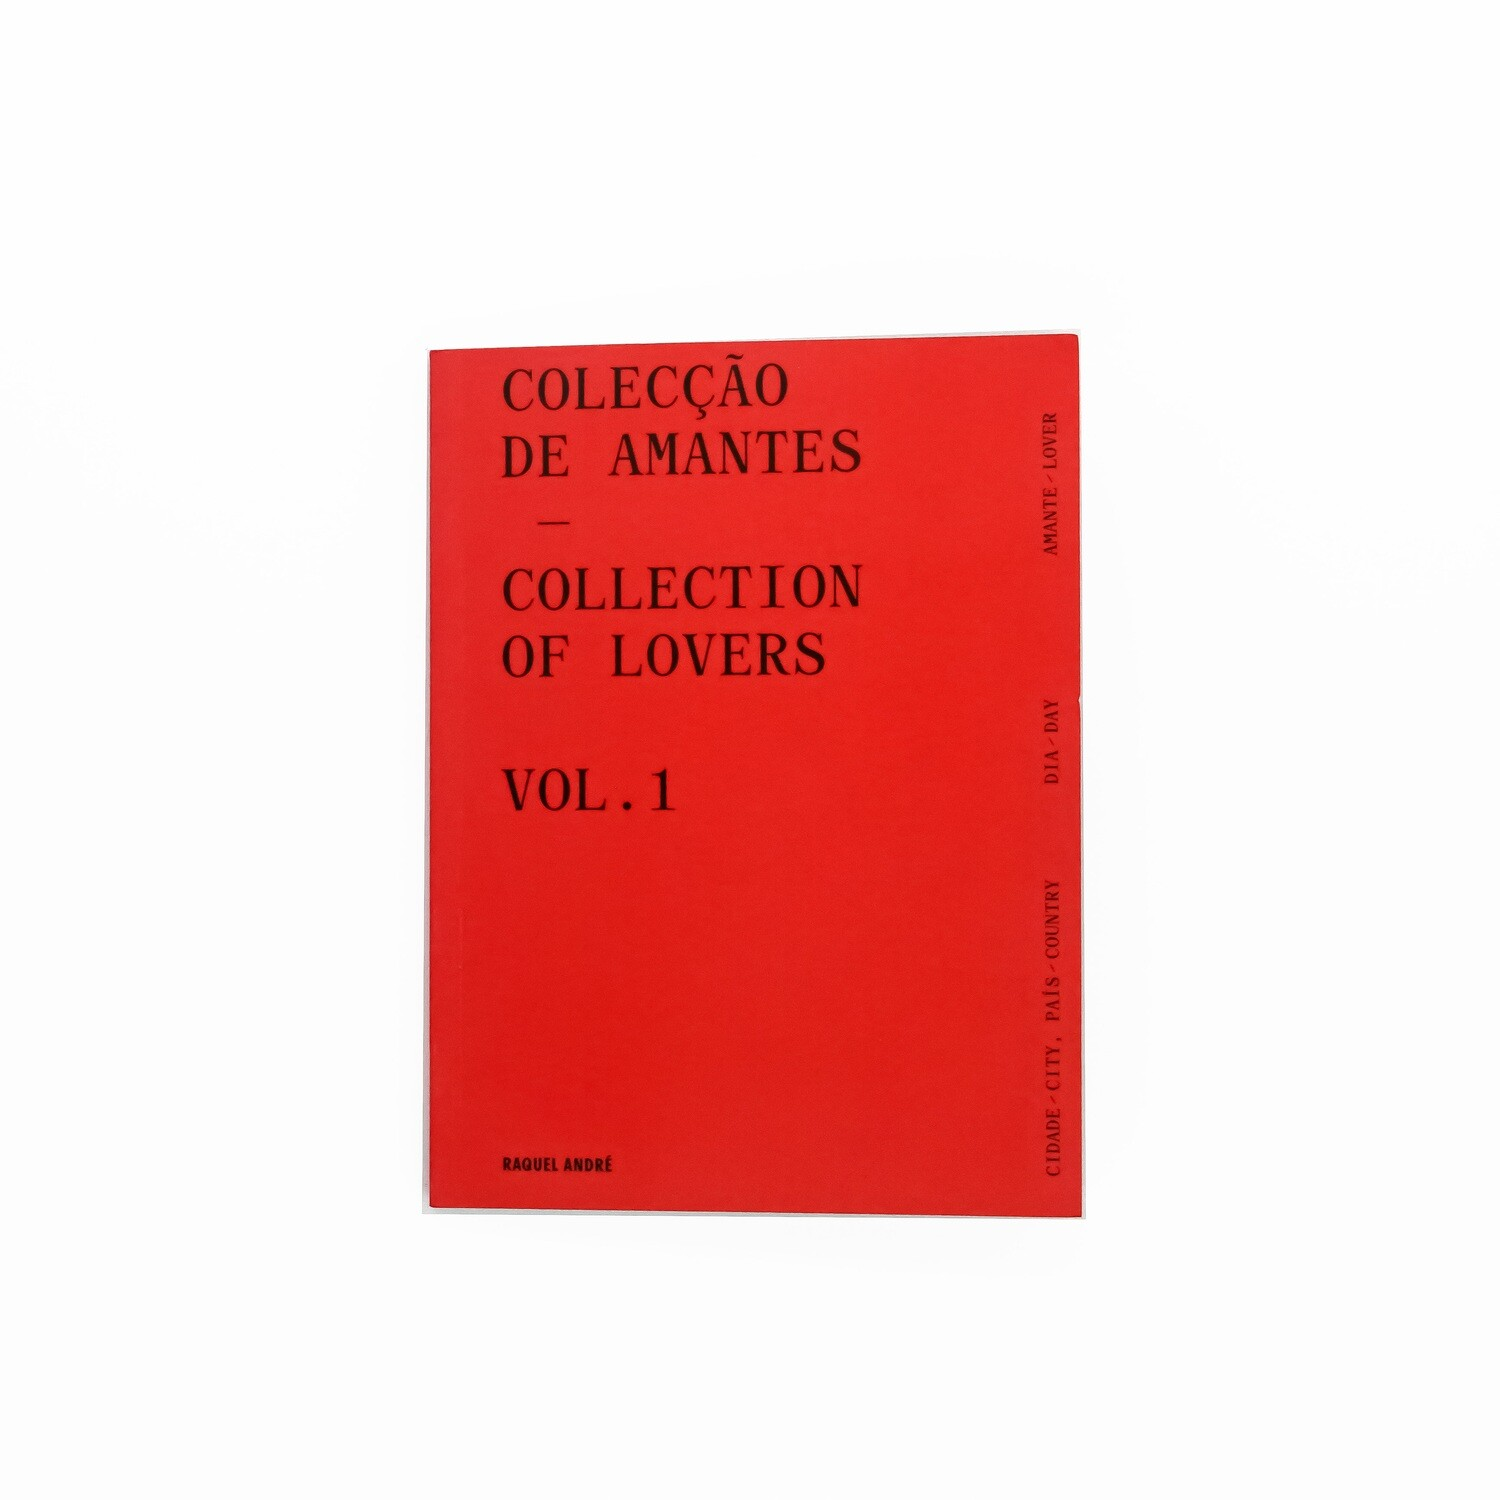 Collection of Lovers - Vol. 1